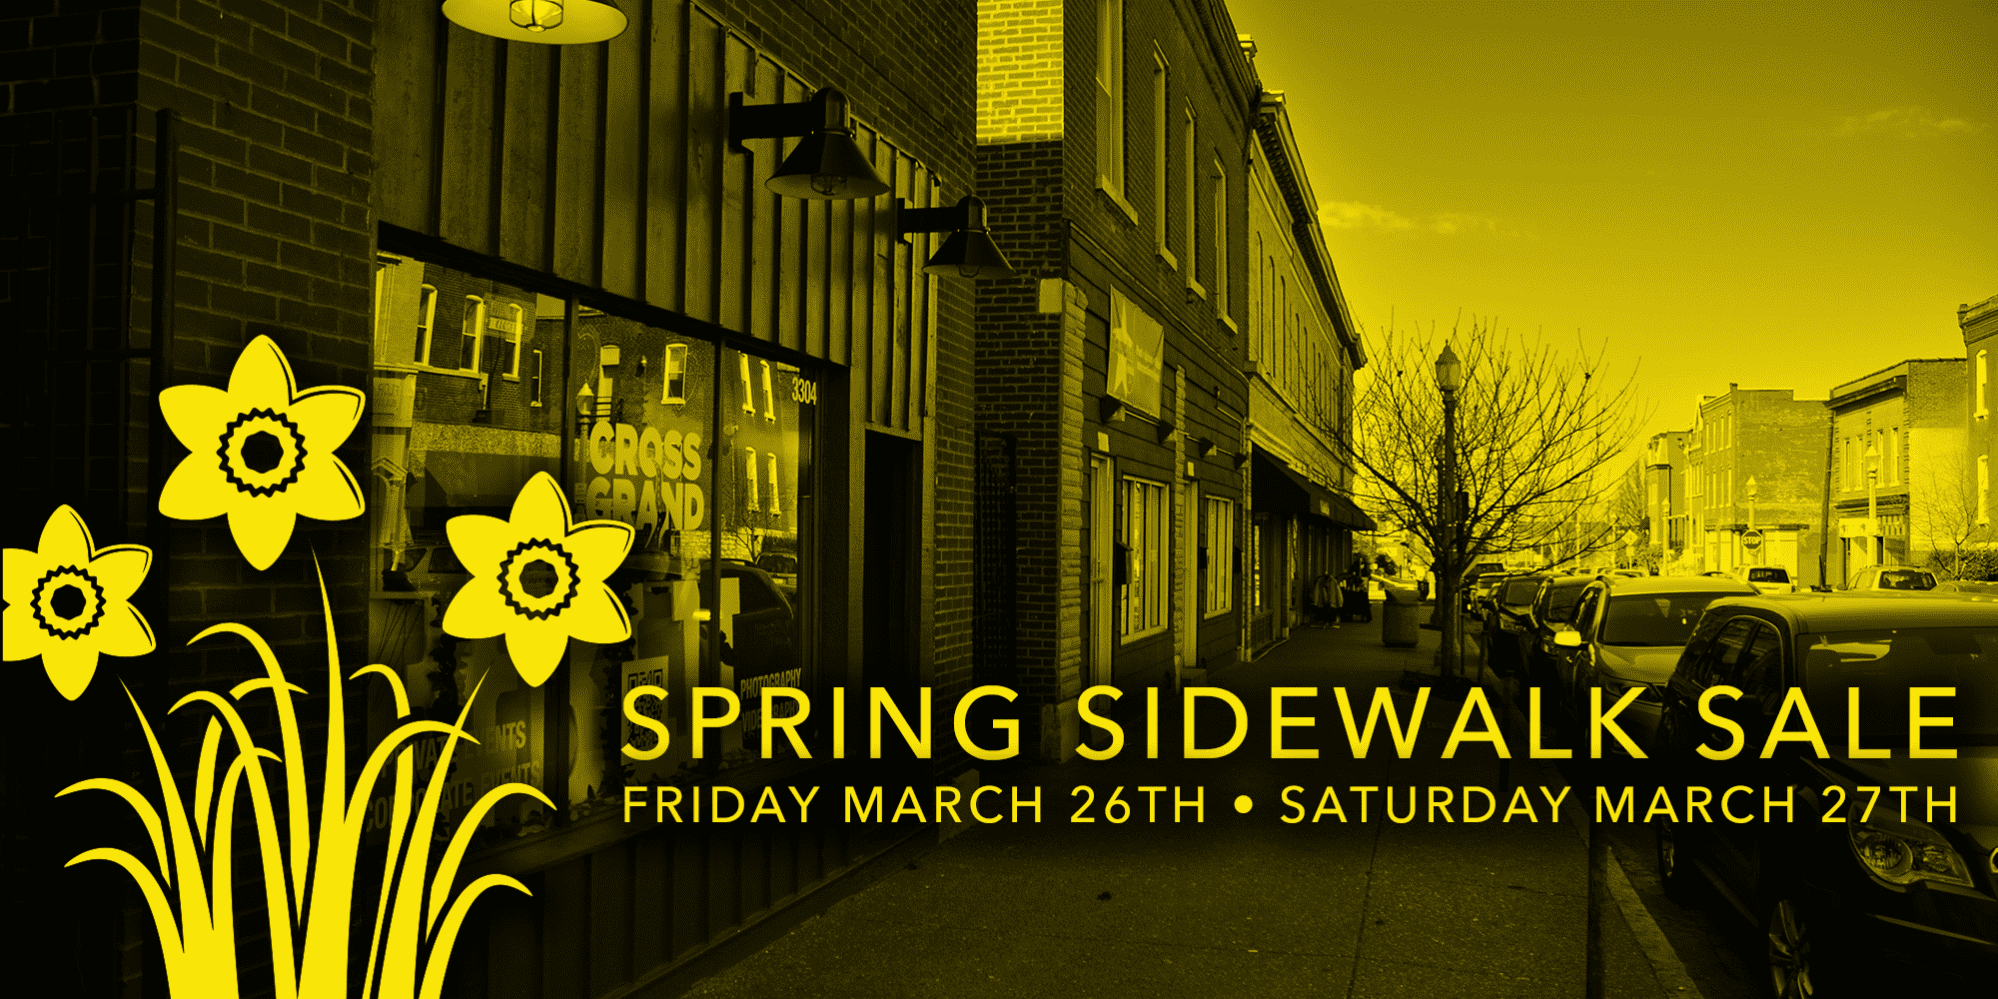 Spring Sidewalk Sale in Downtown Dutchtown, Friday March 26th and Saturday March 27th.